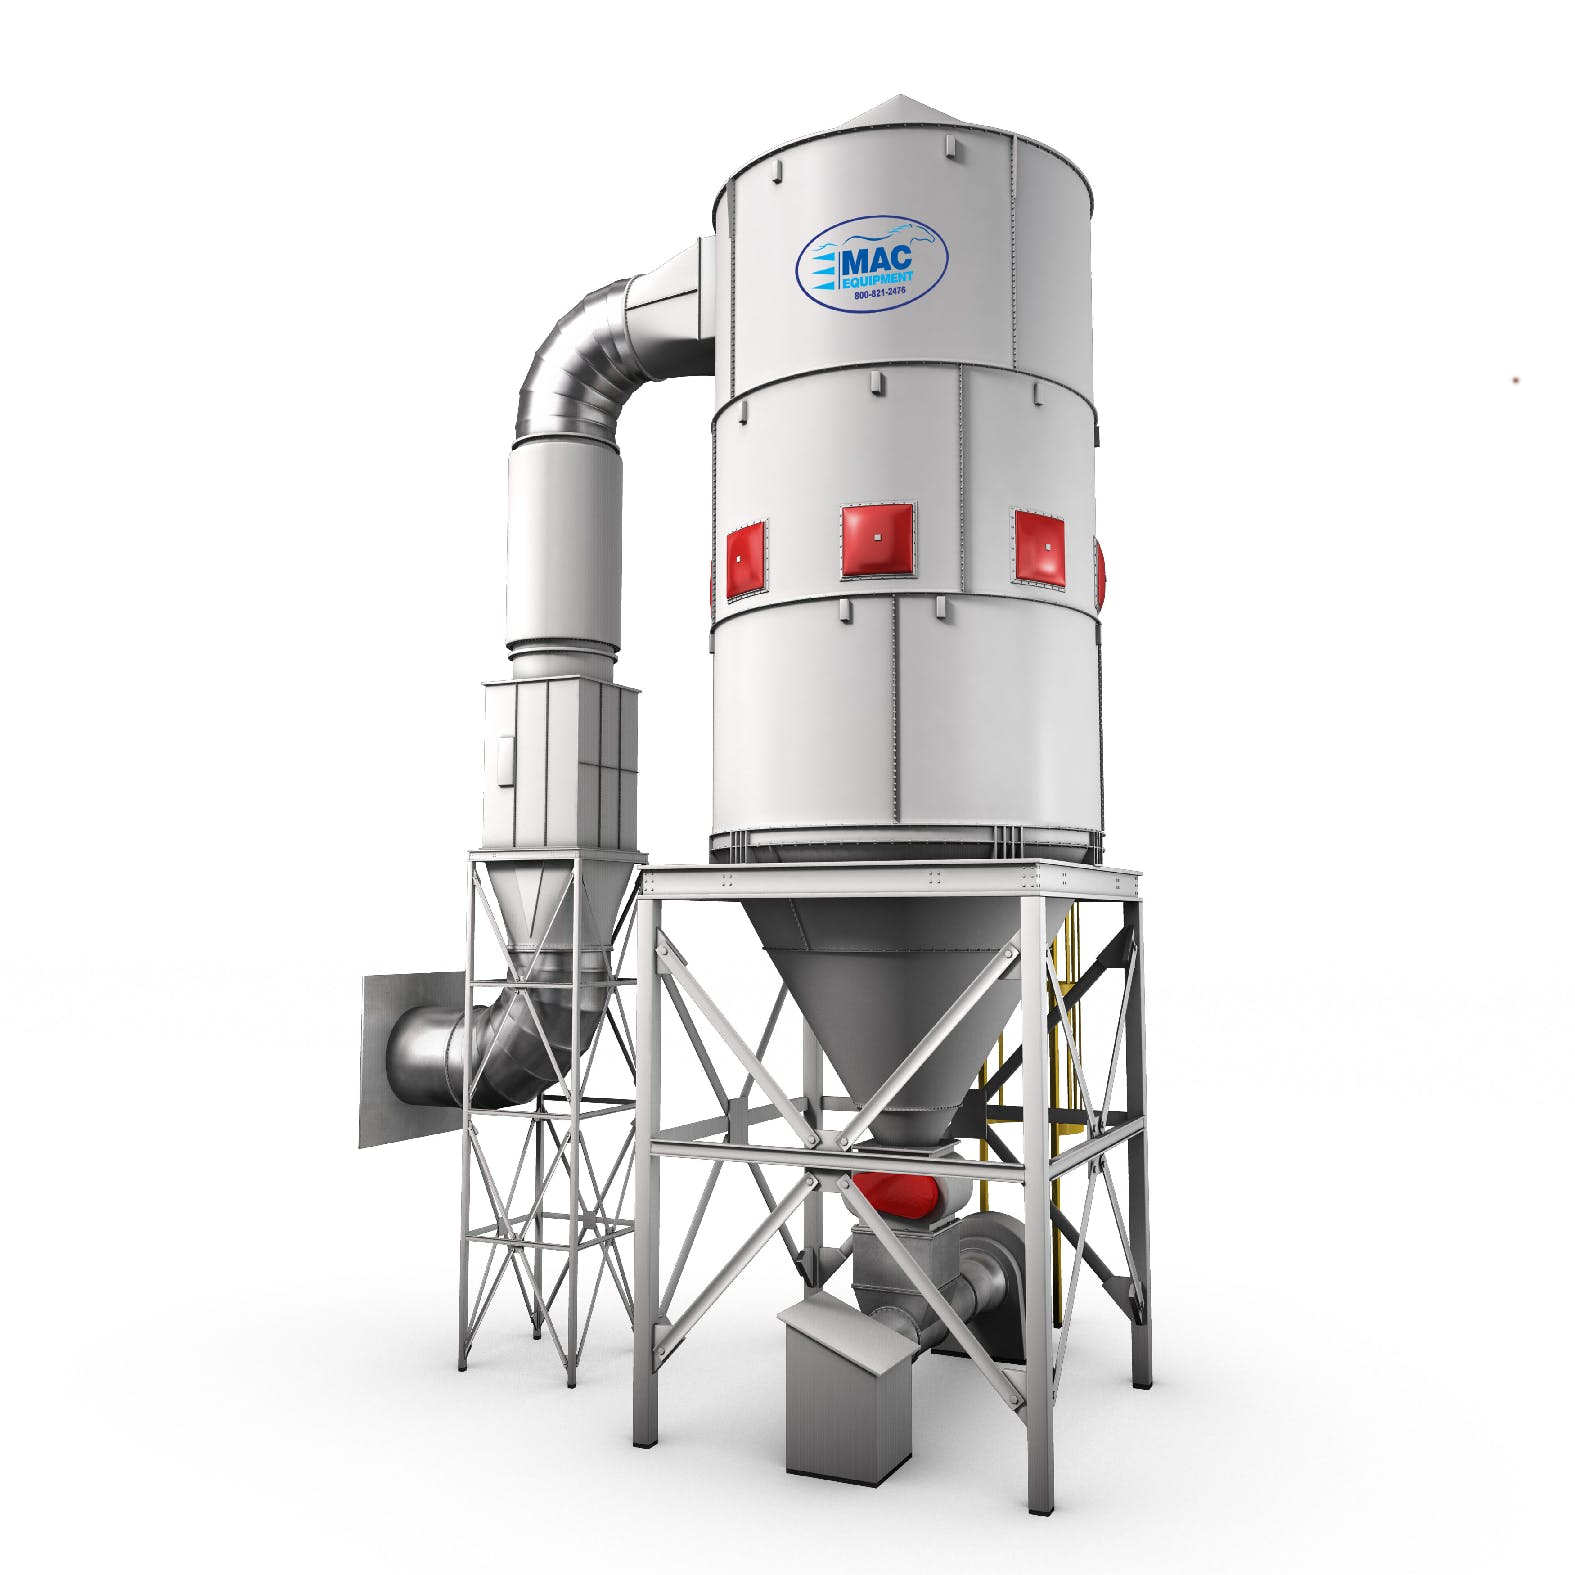 MAC Process-Dust Collection Filters and Cyclones Cartridge filter sold by Peak Equipment